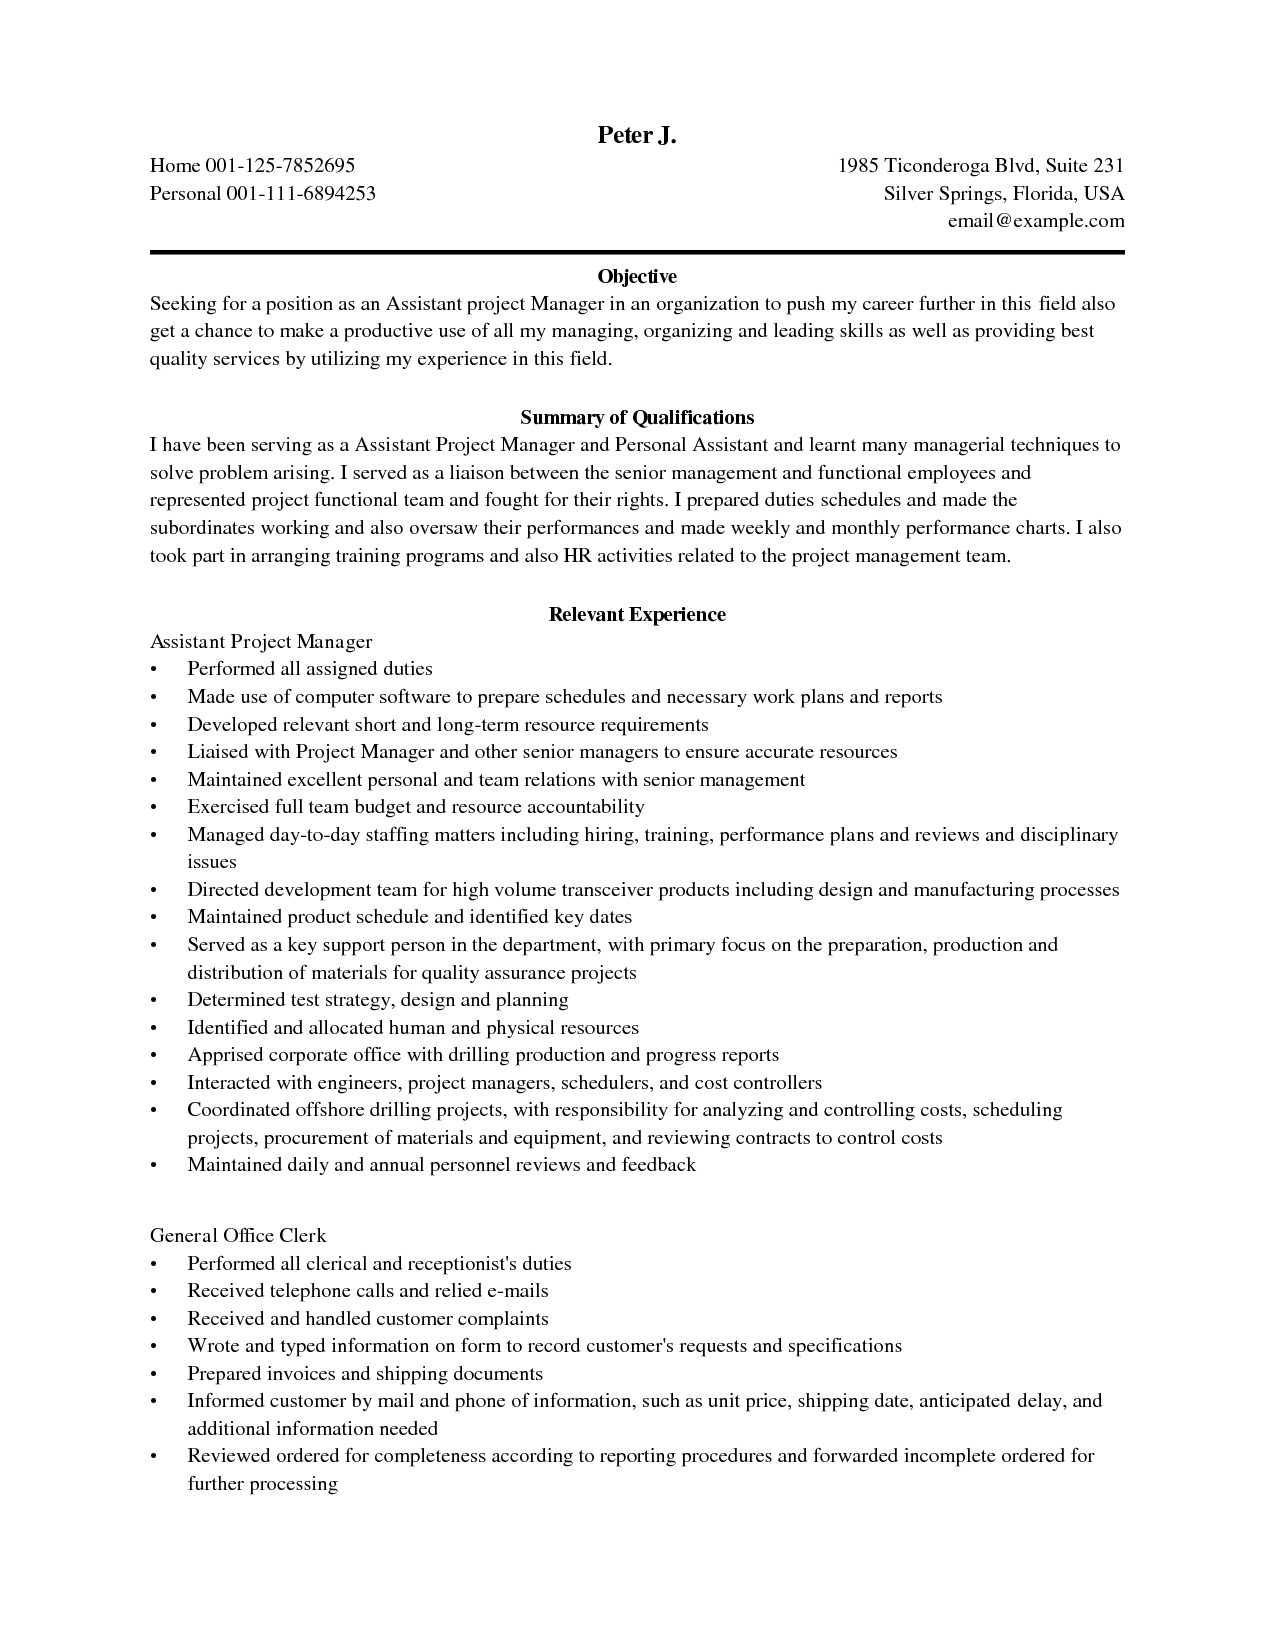 Career Objective Examples Information Technology Printable Resume Job Large  Size  Resume My Career